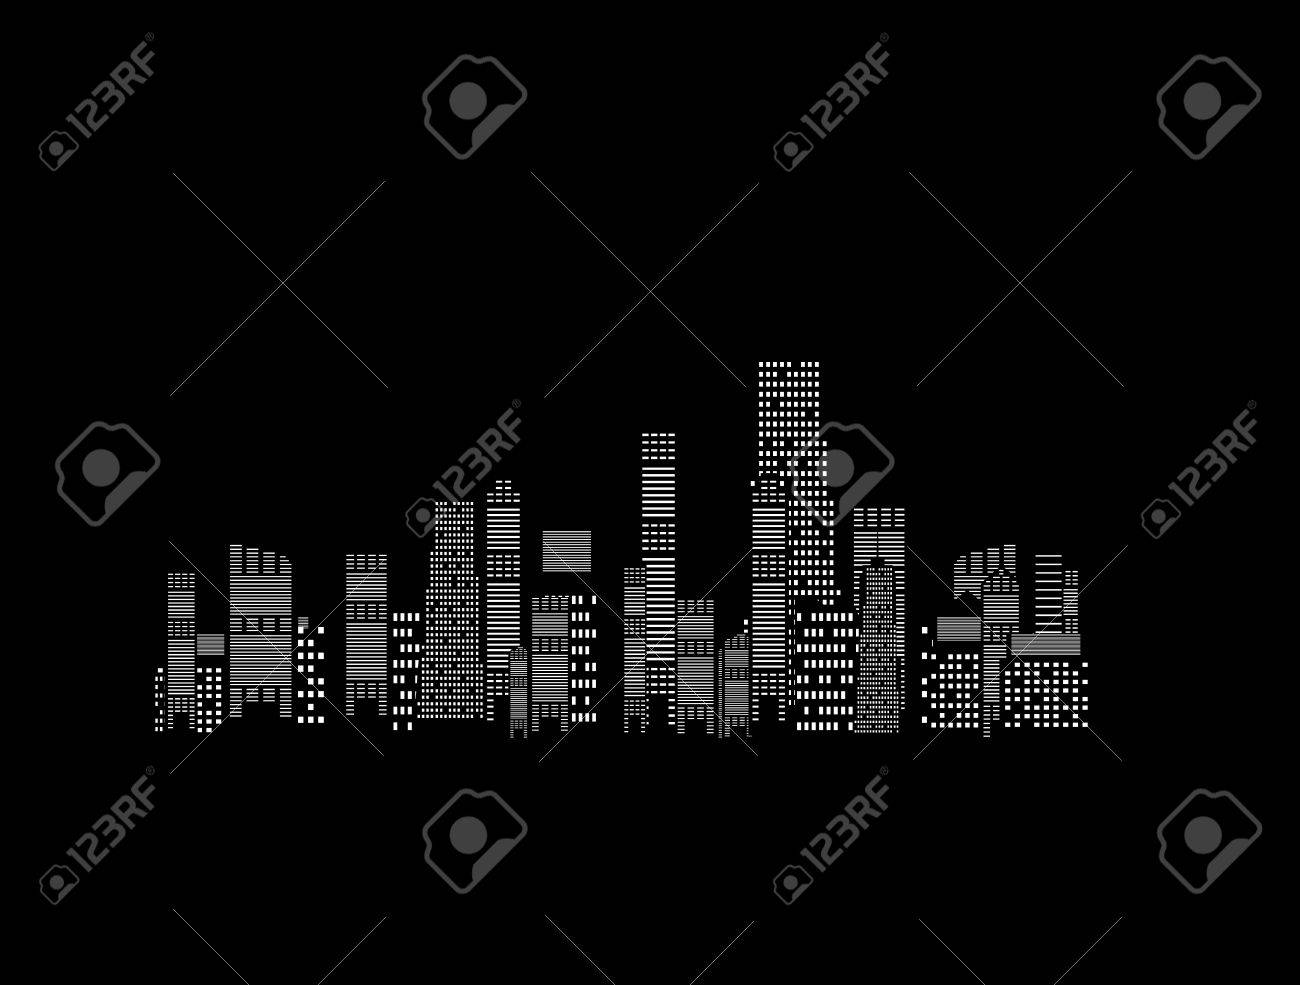 illustration of cities silhouette on black background Stock Vector - 18517018